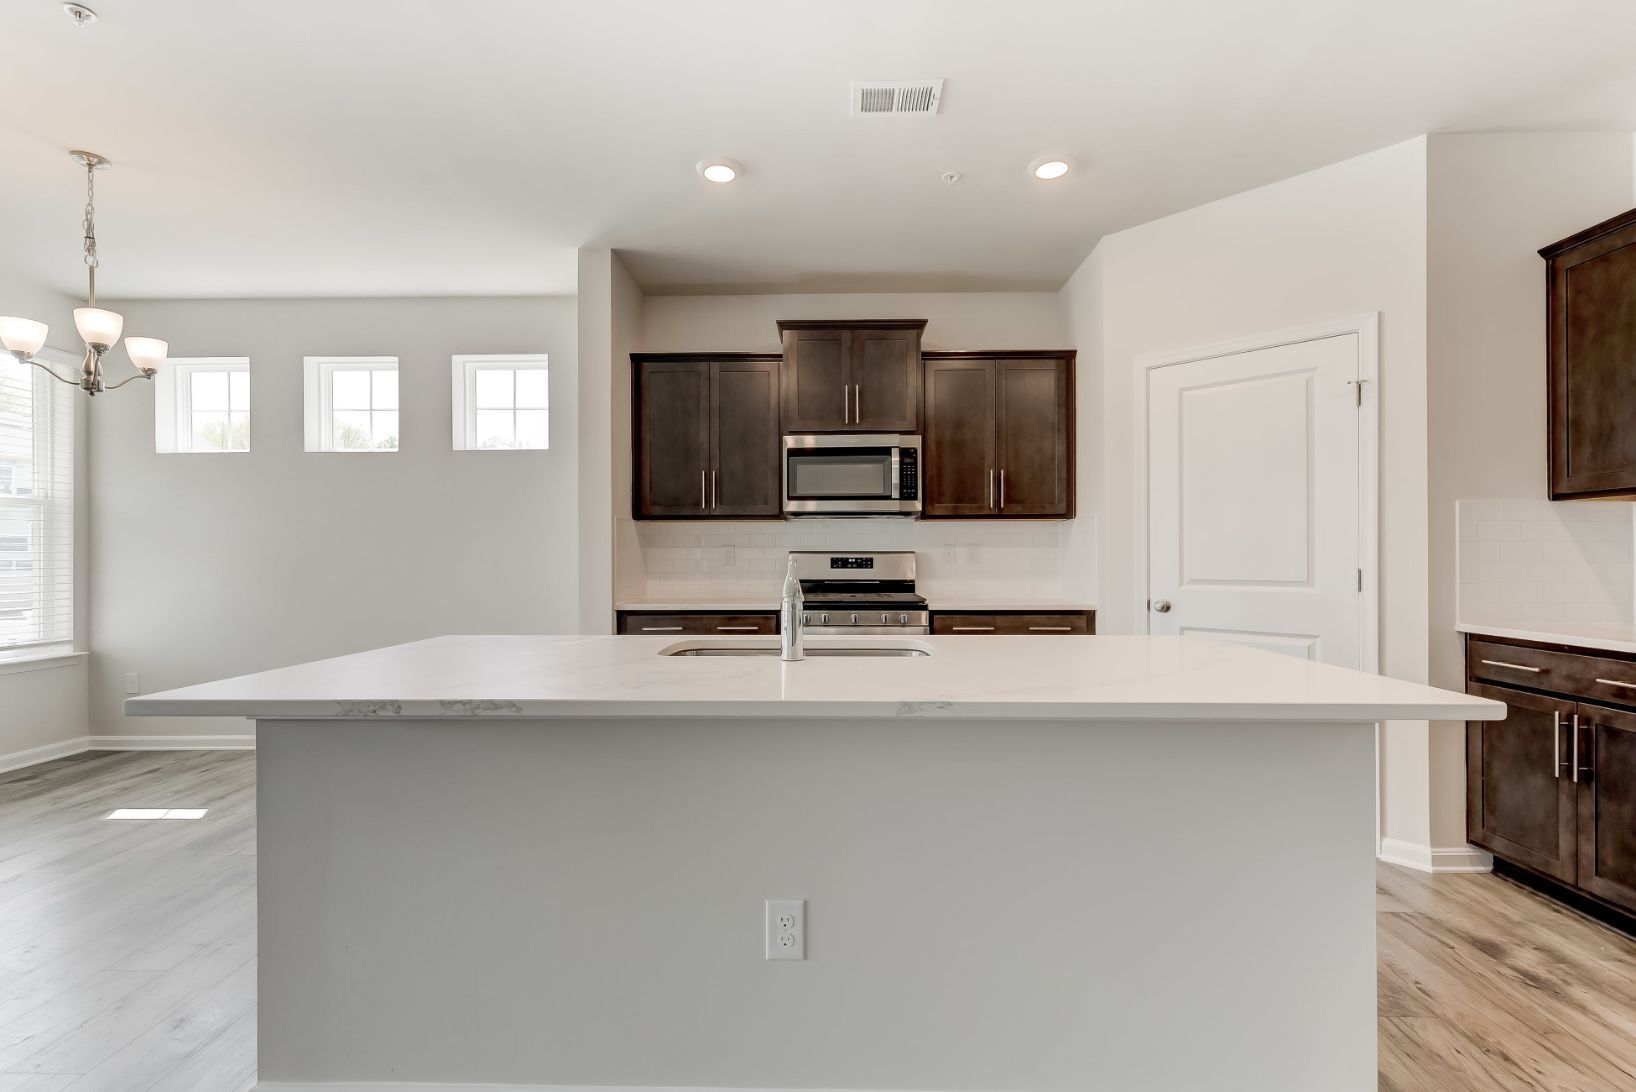 Kitchen featured in the WINDSOR By D.R. Horton in Baltimore, MD